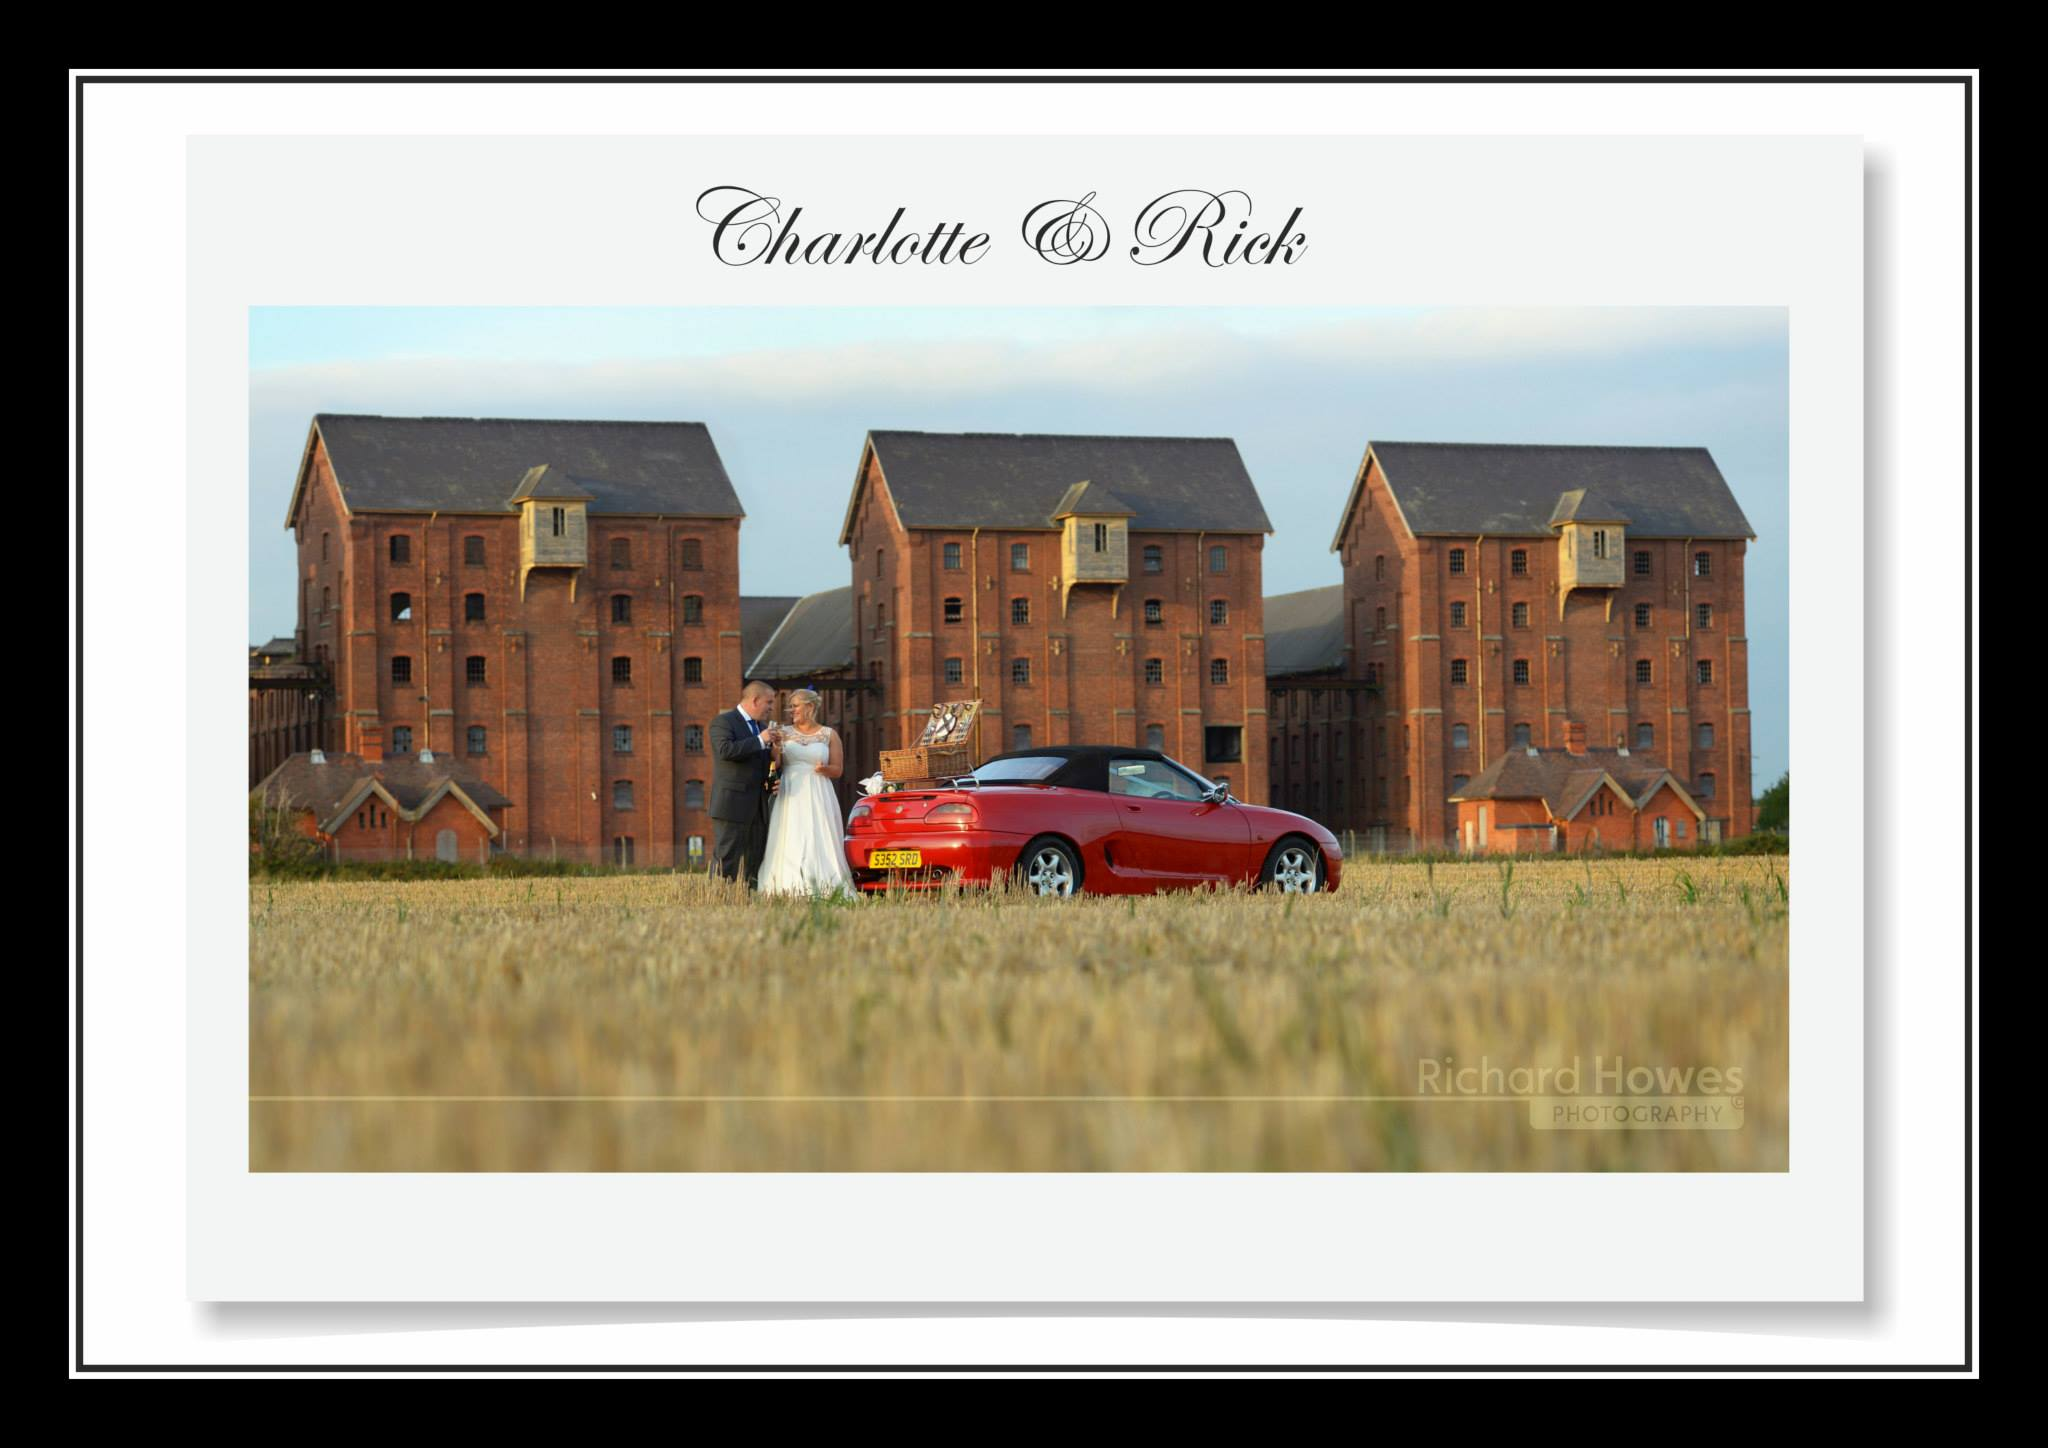 Congratulations to Charlotte & Rick Steele who were married and had their reception at The Carre Arms Hotel, Sleaford.